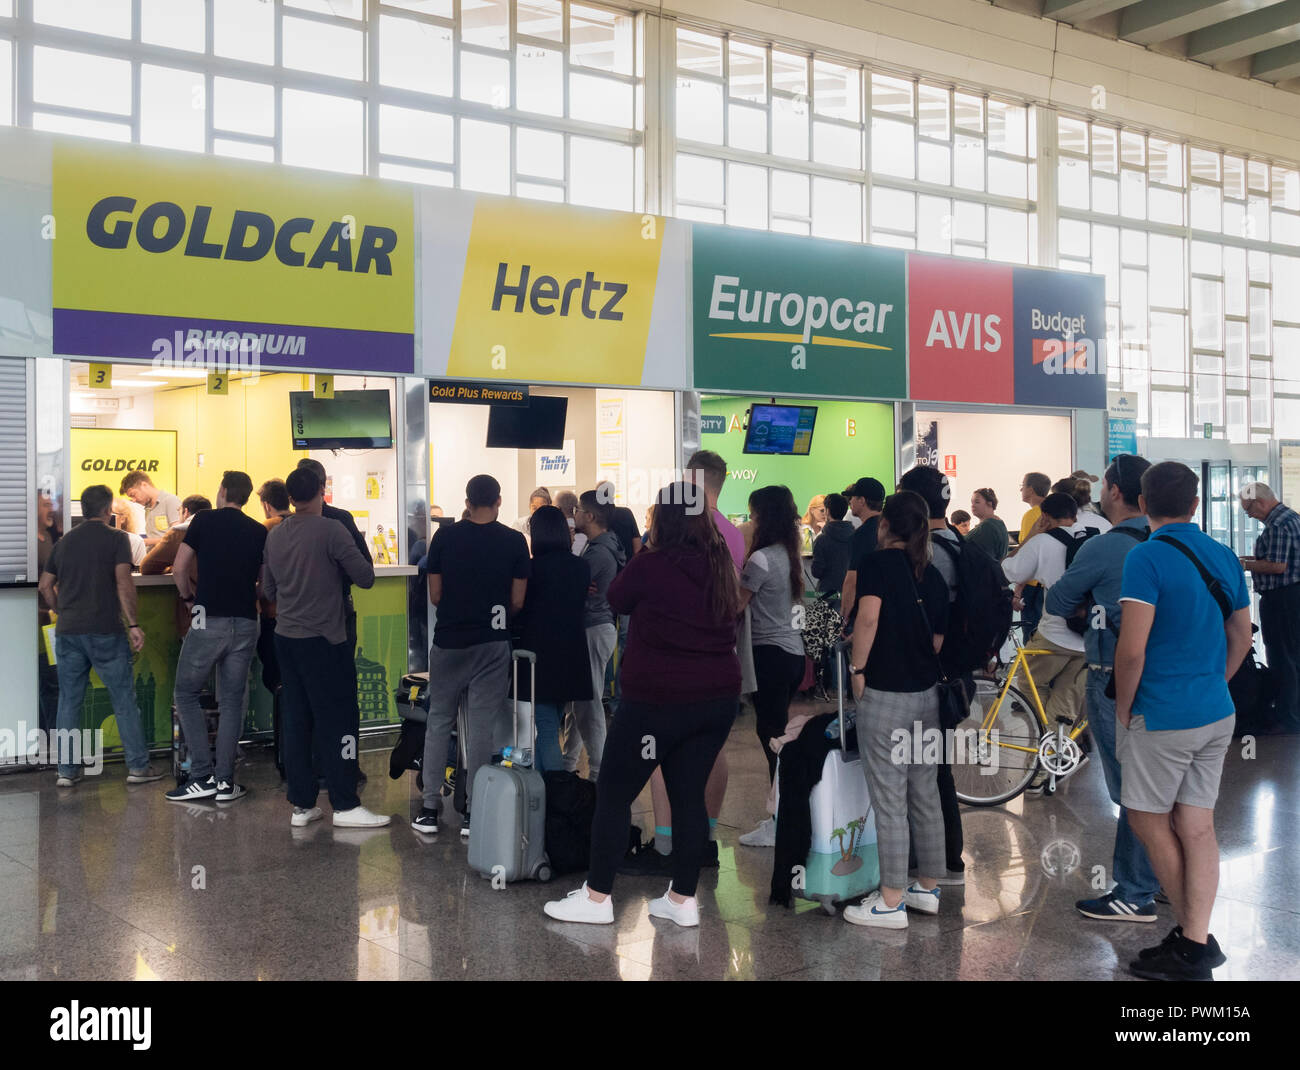 Europcar Airport Stock Photos Europcar Airport Stock Images Alamy